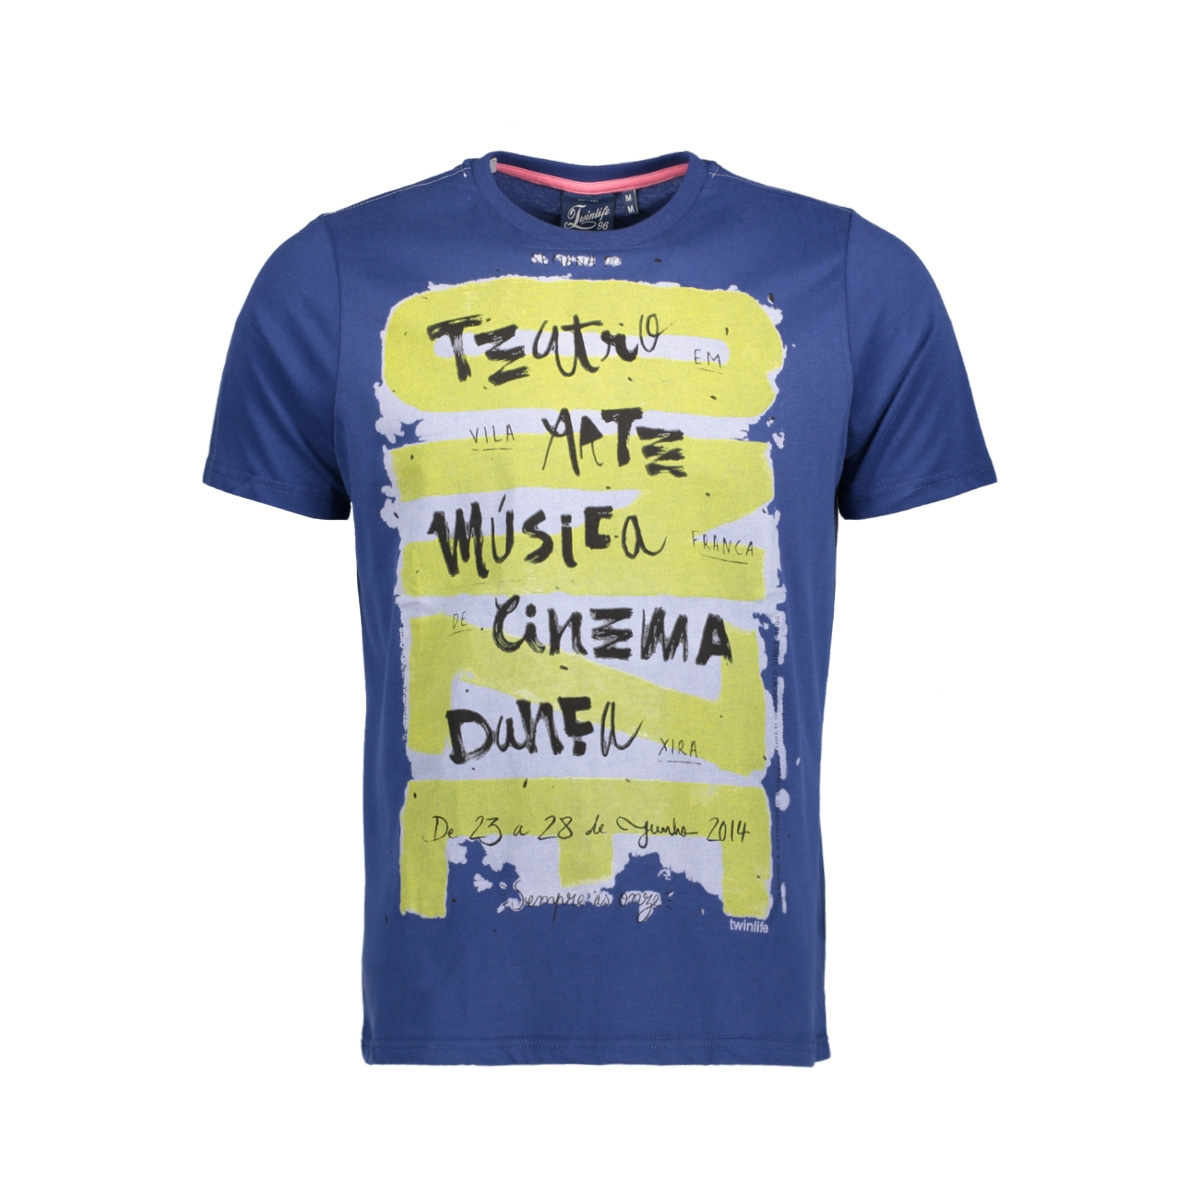 mts711560 twinlife t-shirt 6568